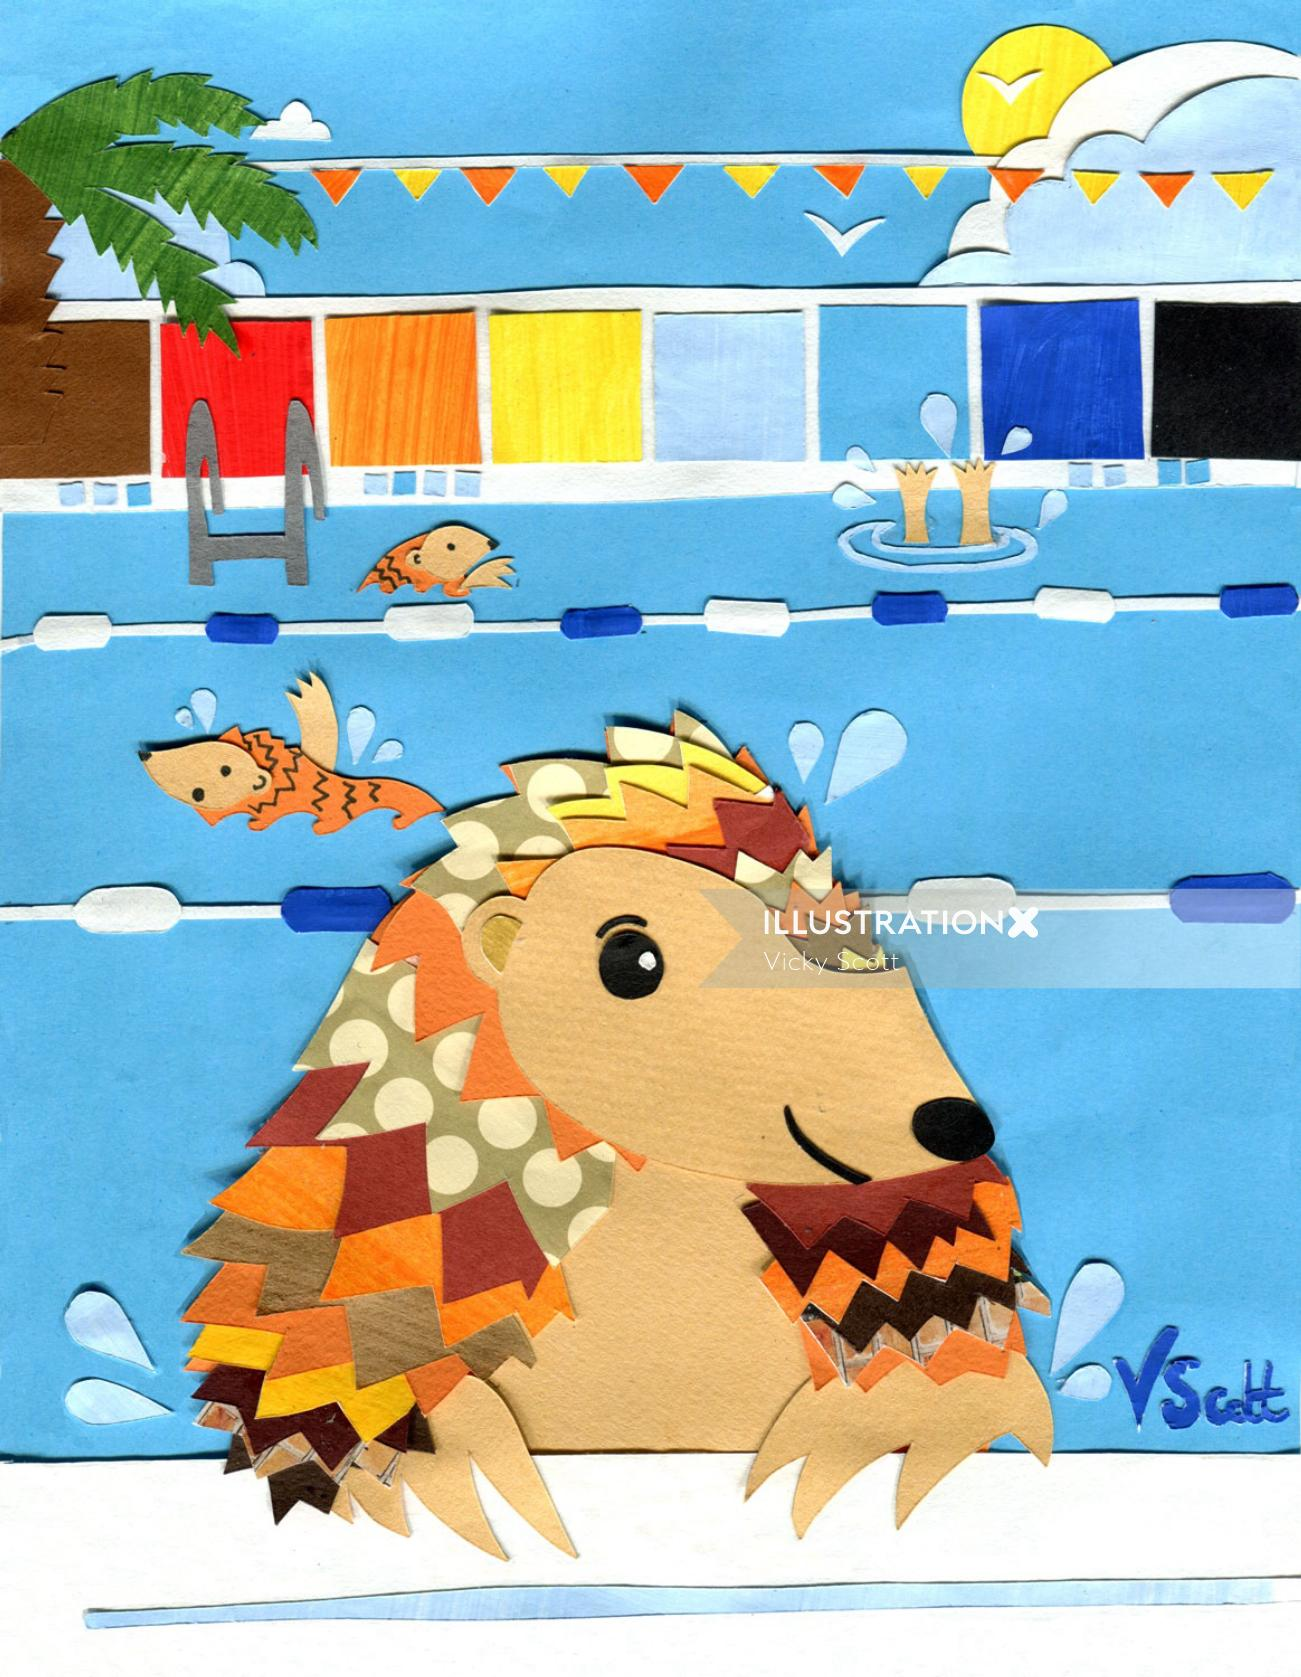 pangolin, endangered animals, swimming, childrens illustration, sport, endangered wildlife